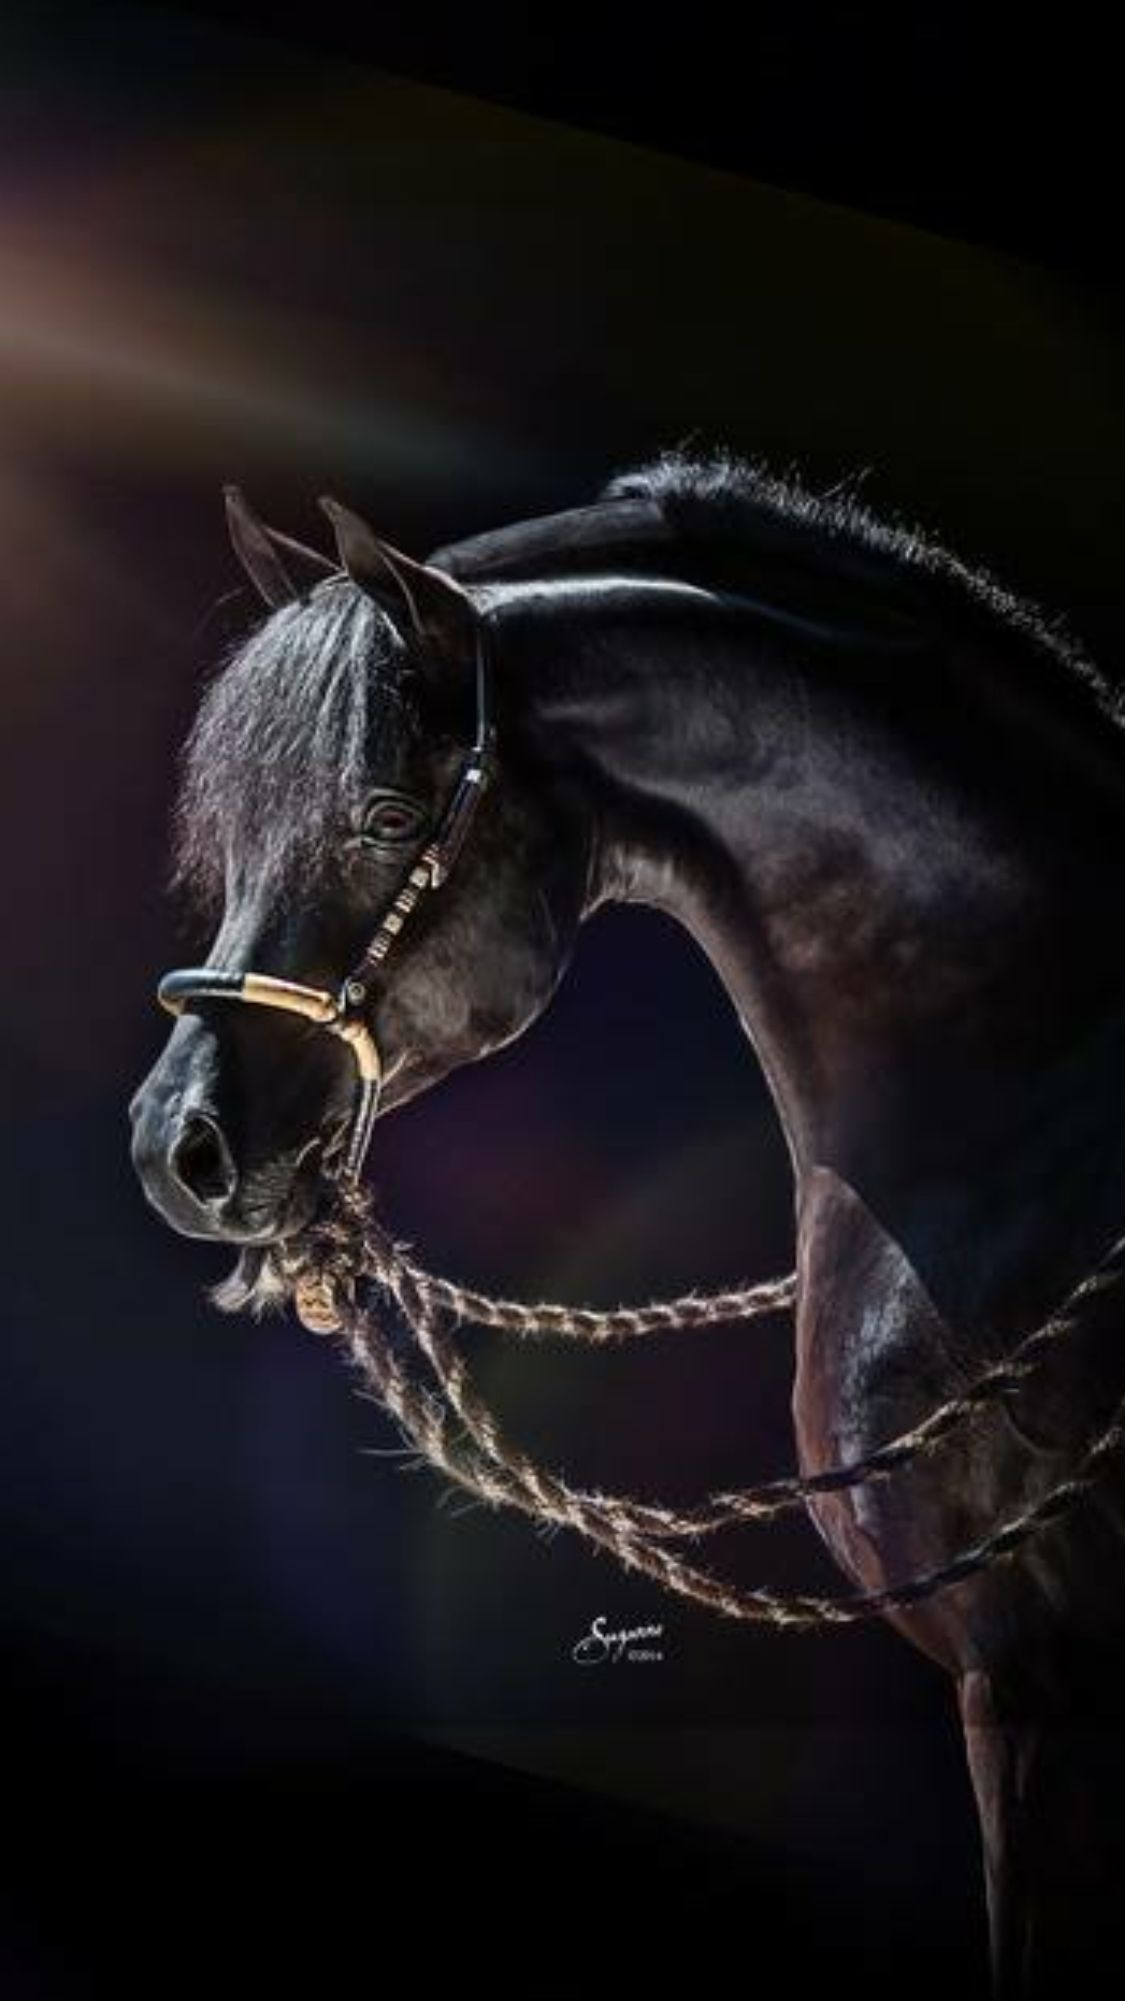 This is stunning, as a photo it's beautiful...as a horse he's magnificent!